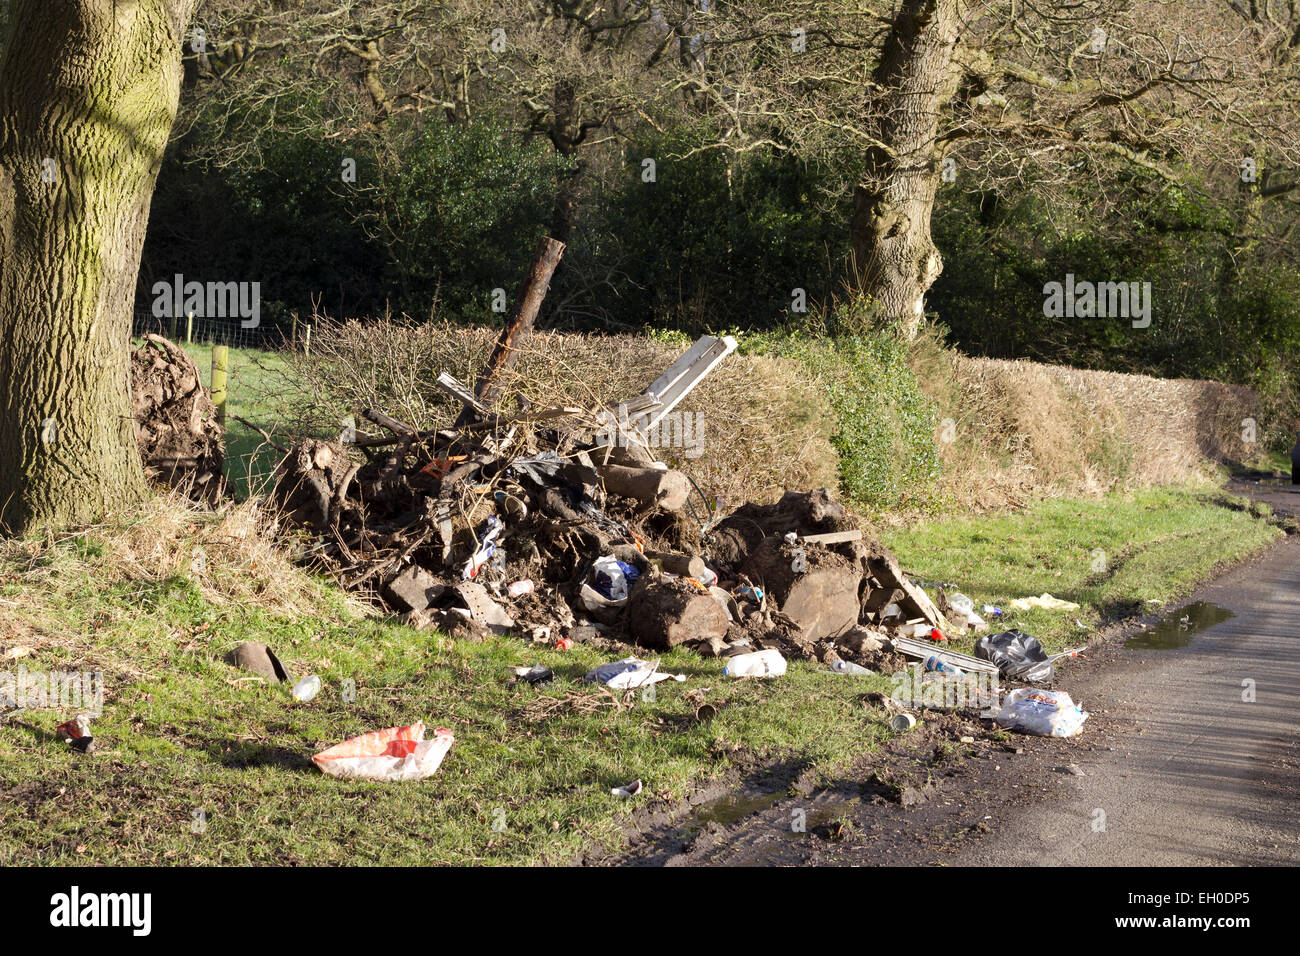 Fly tipping in a country lane.Garden and household rubbish dumped against a hedgerow in England, UK. - Stock Image